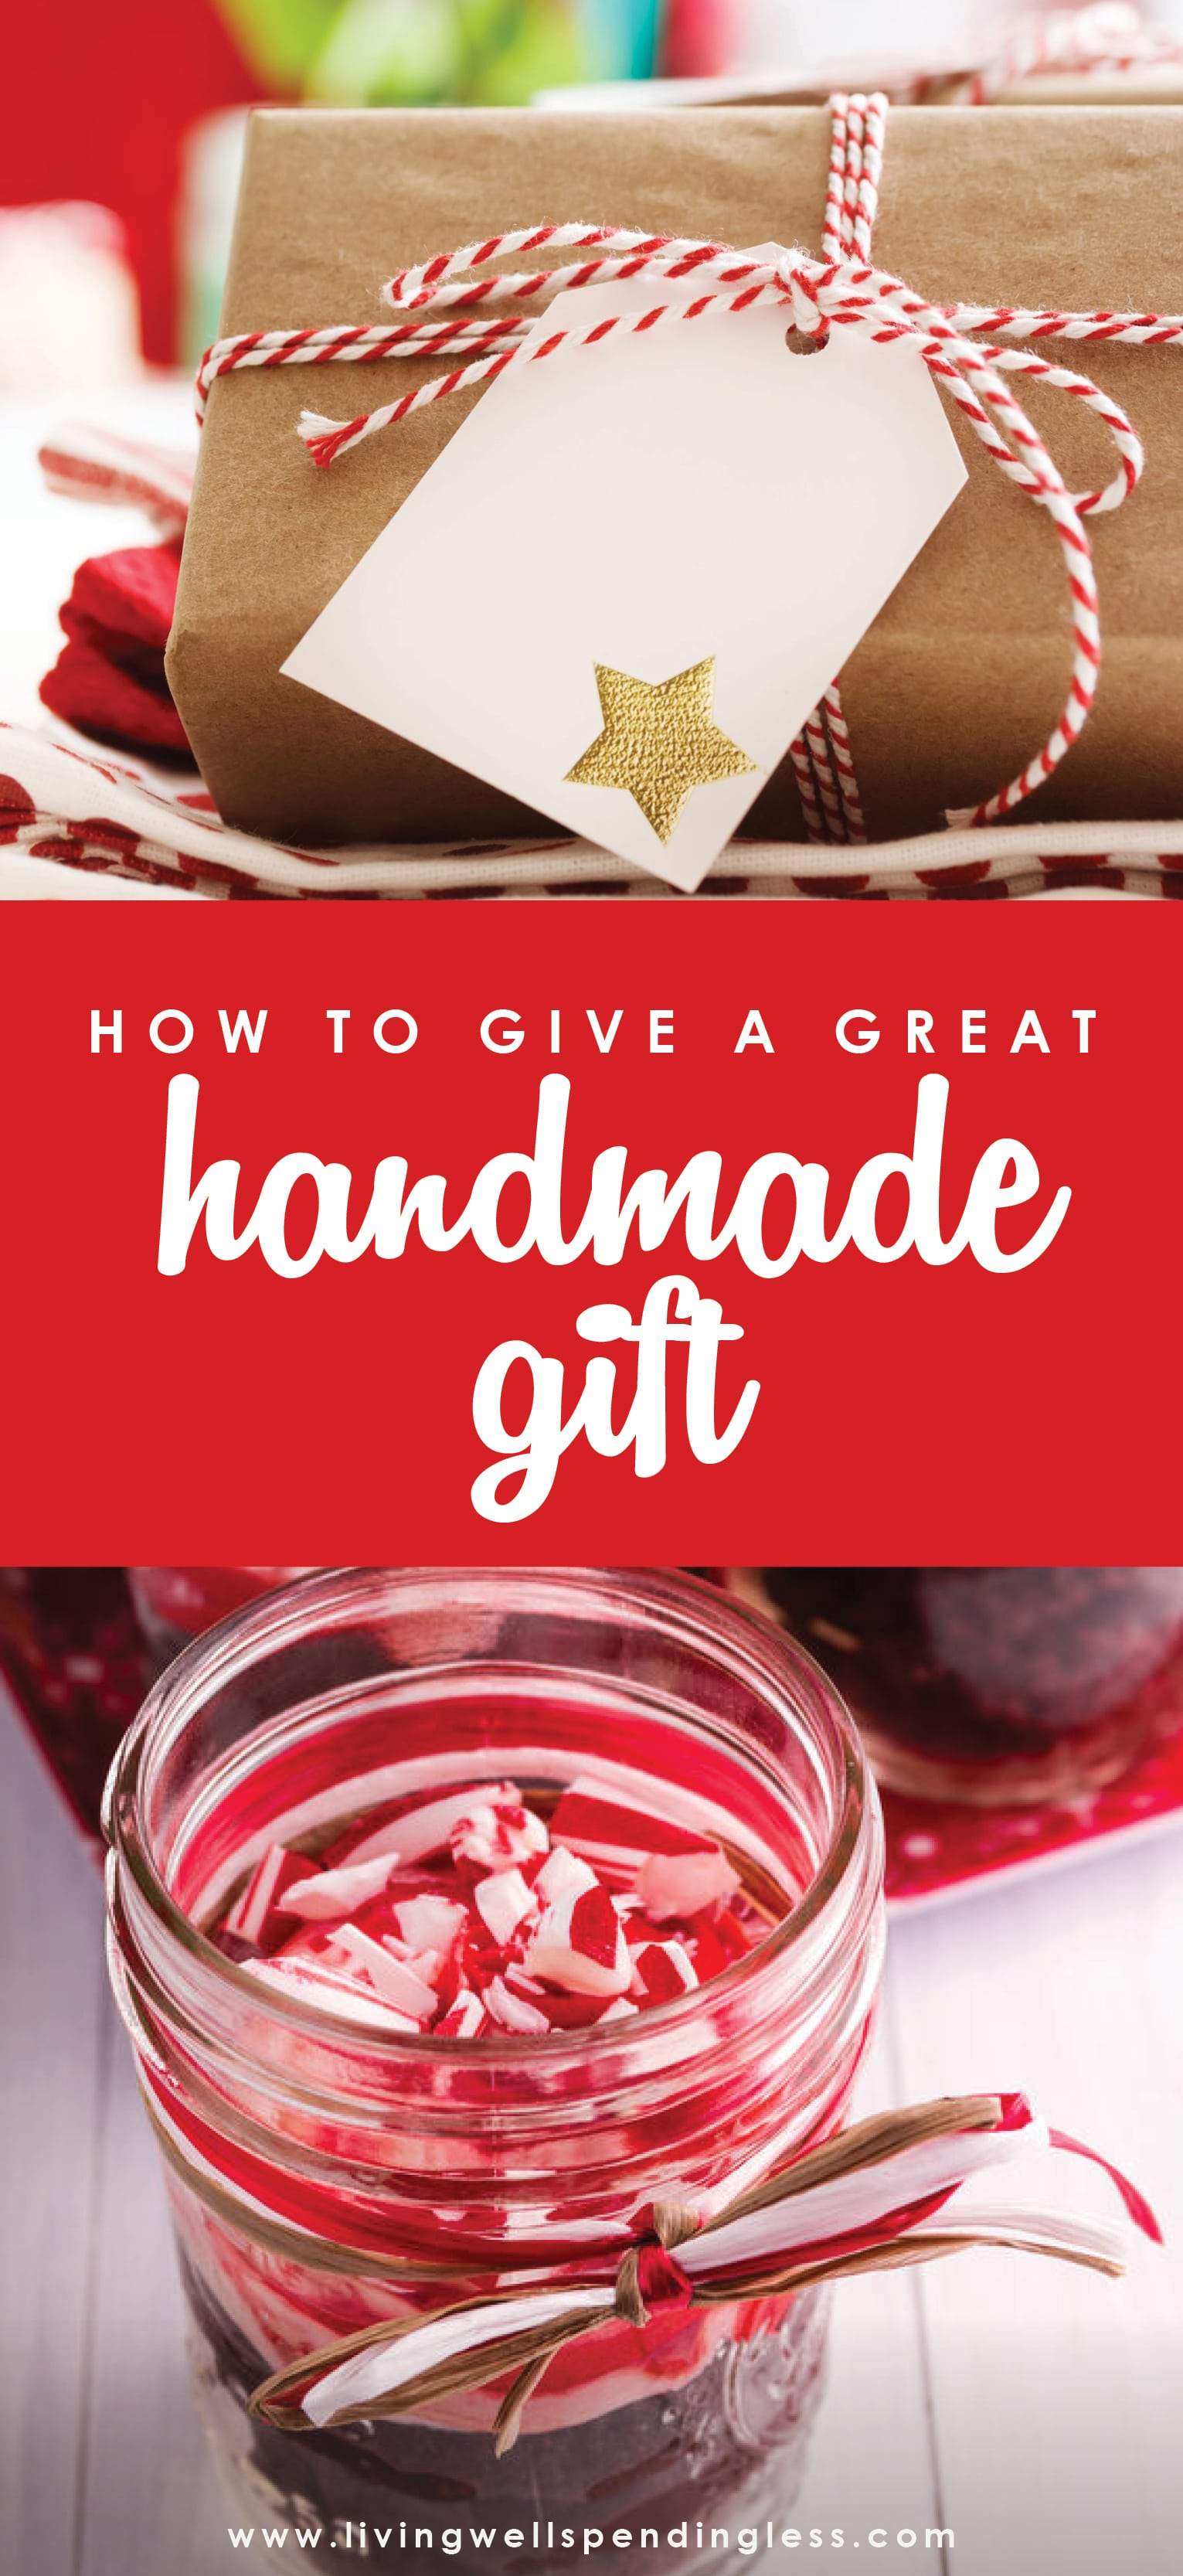 How to give a great handmade gift.